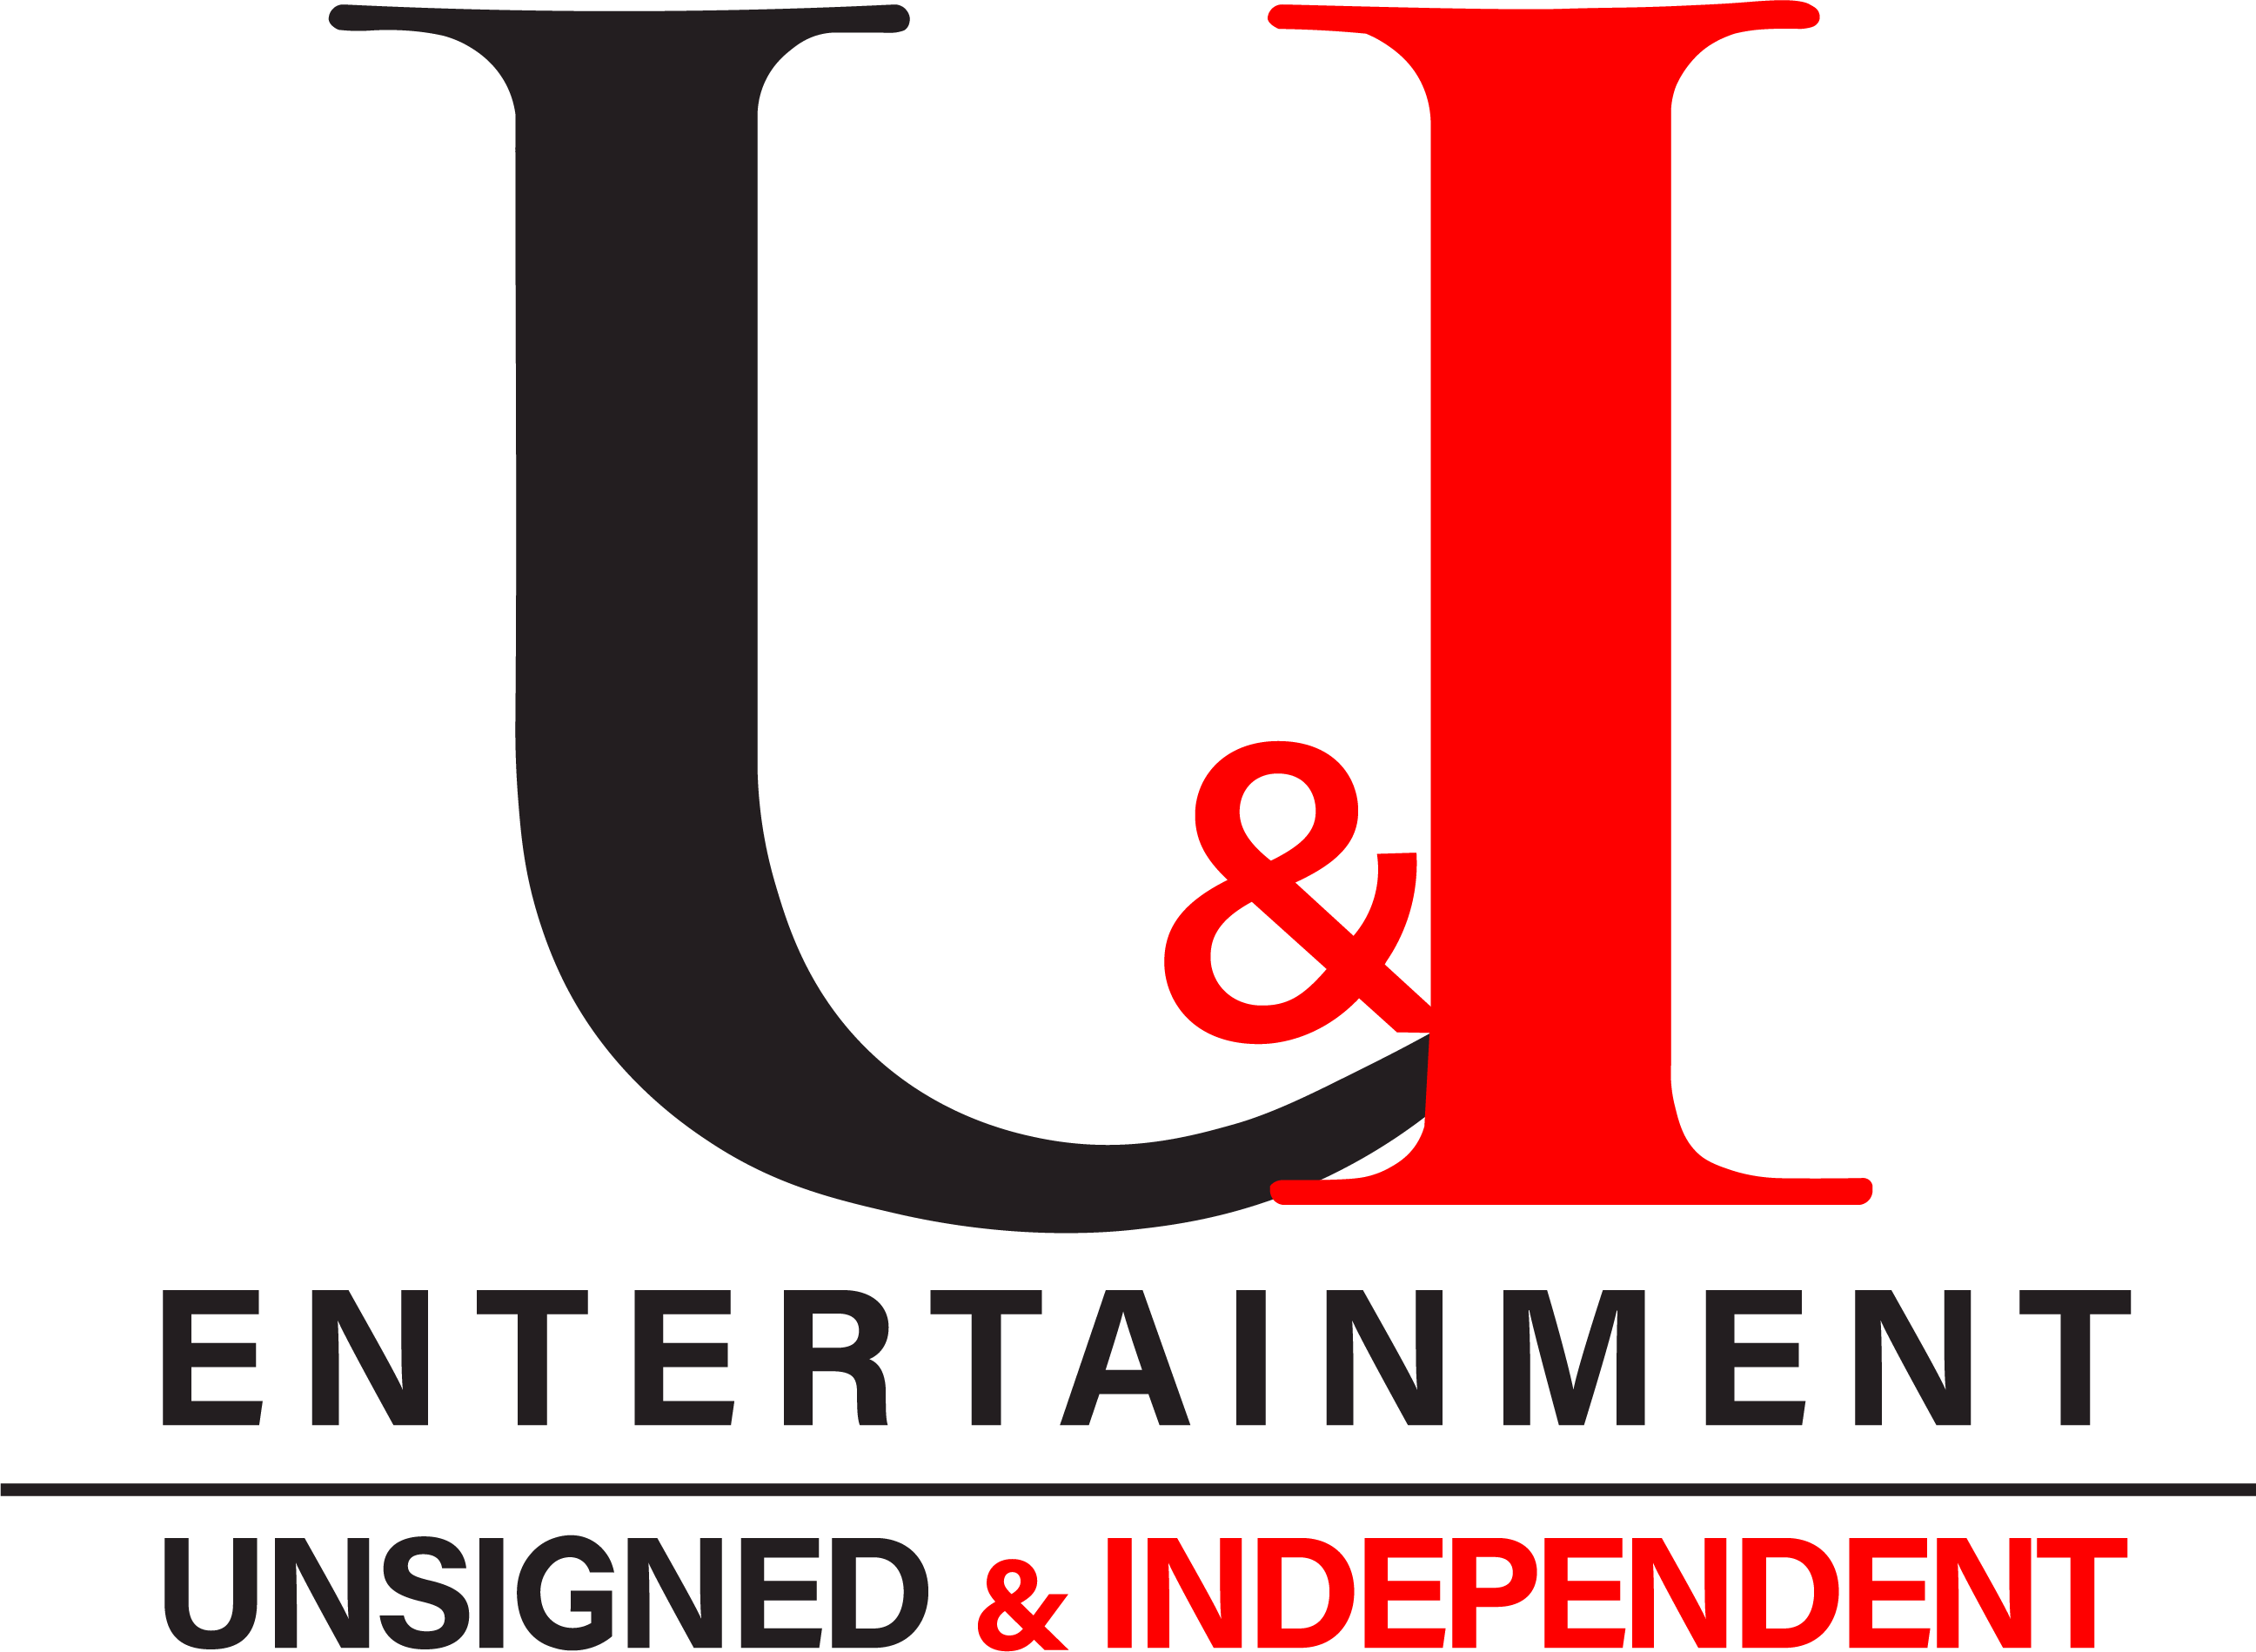 UI Entertainment logo